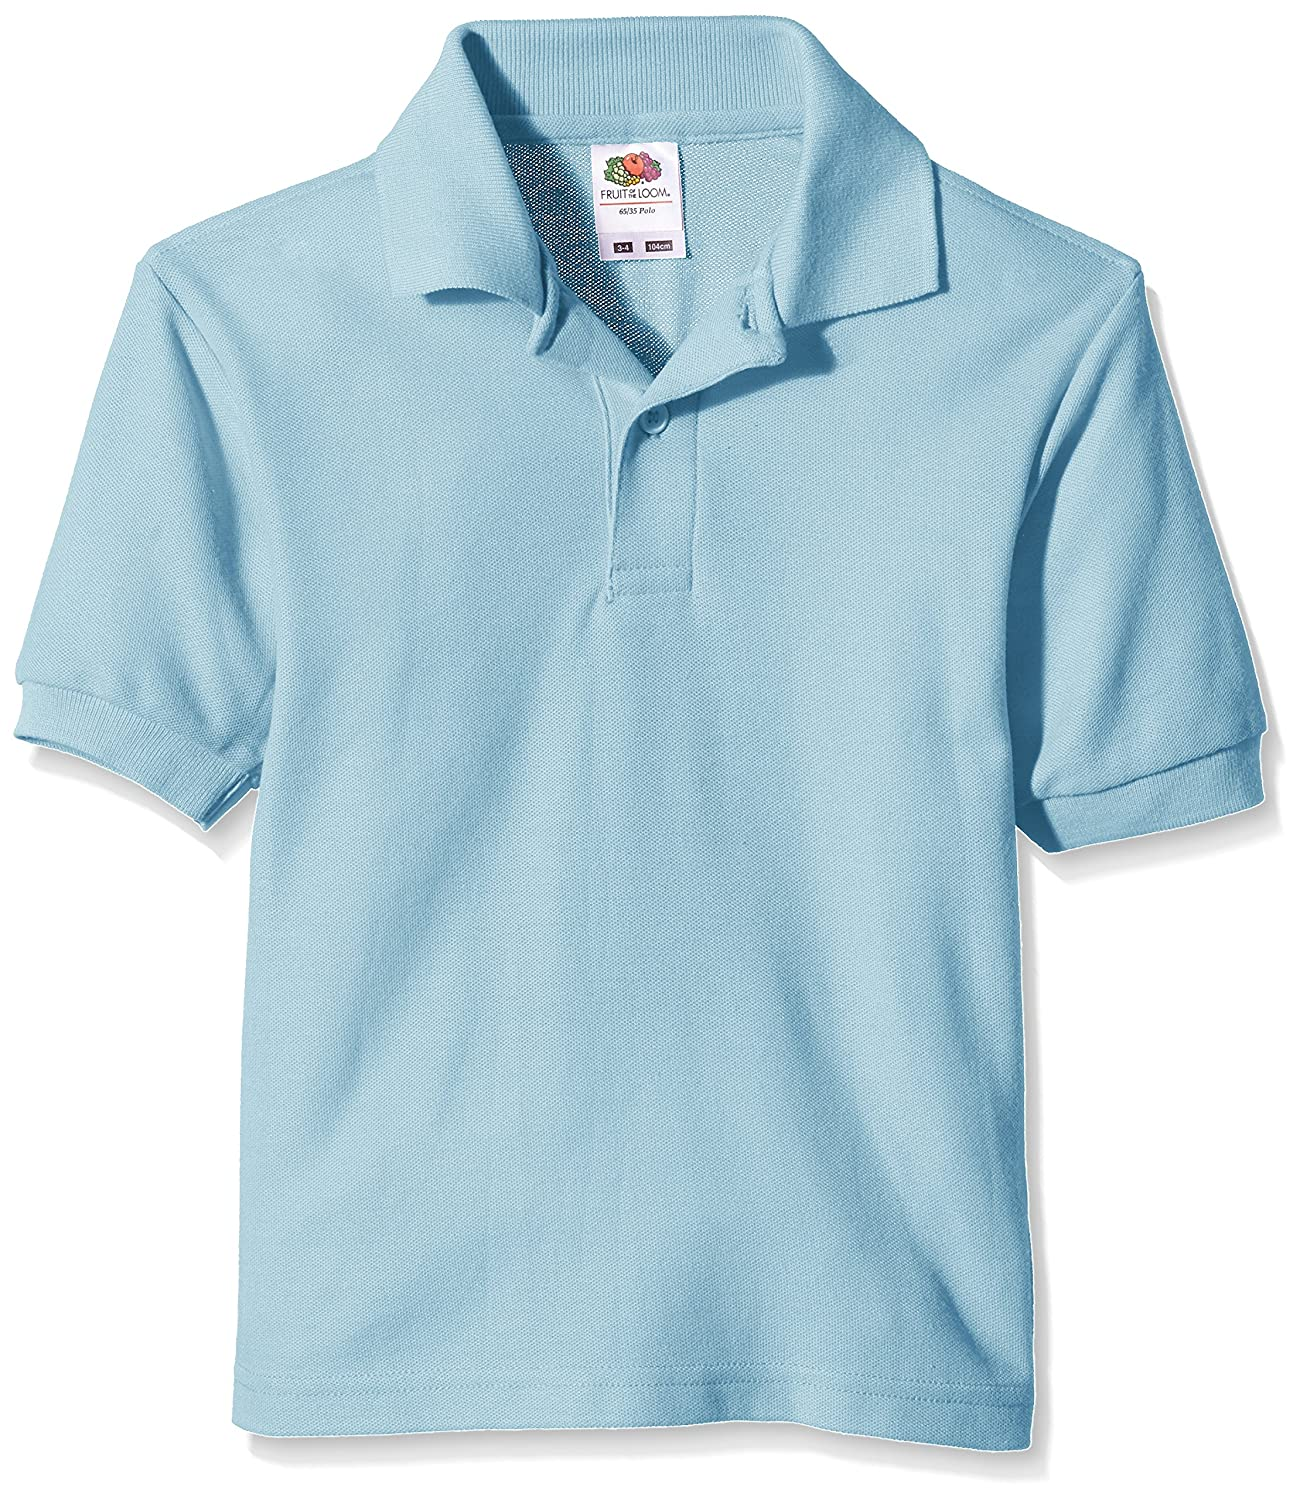 Fruit of the Loom Baby Pique Polo Shirt 63-417-0